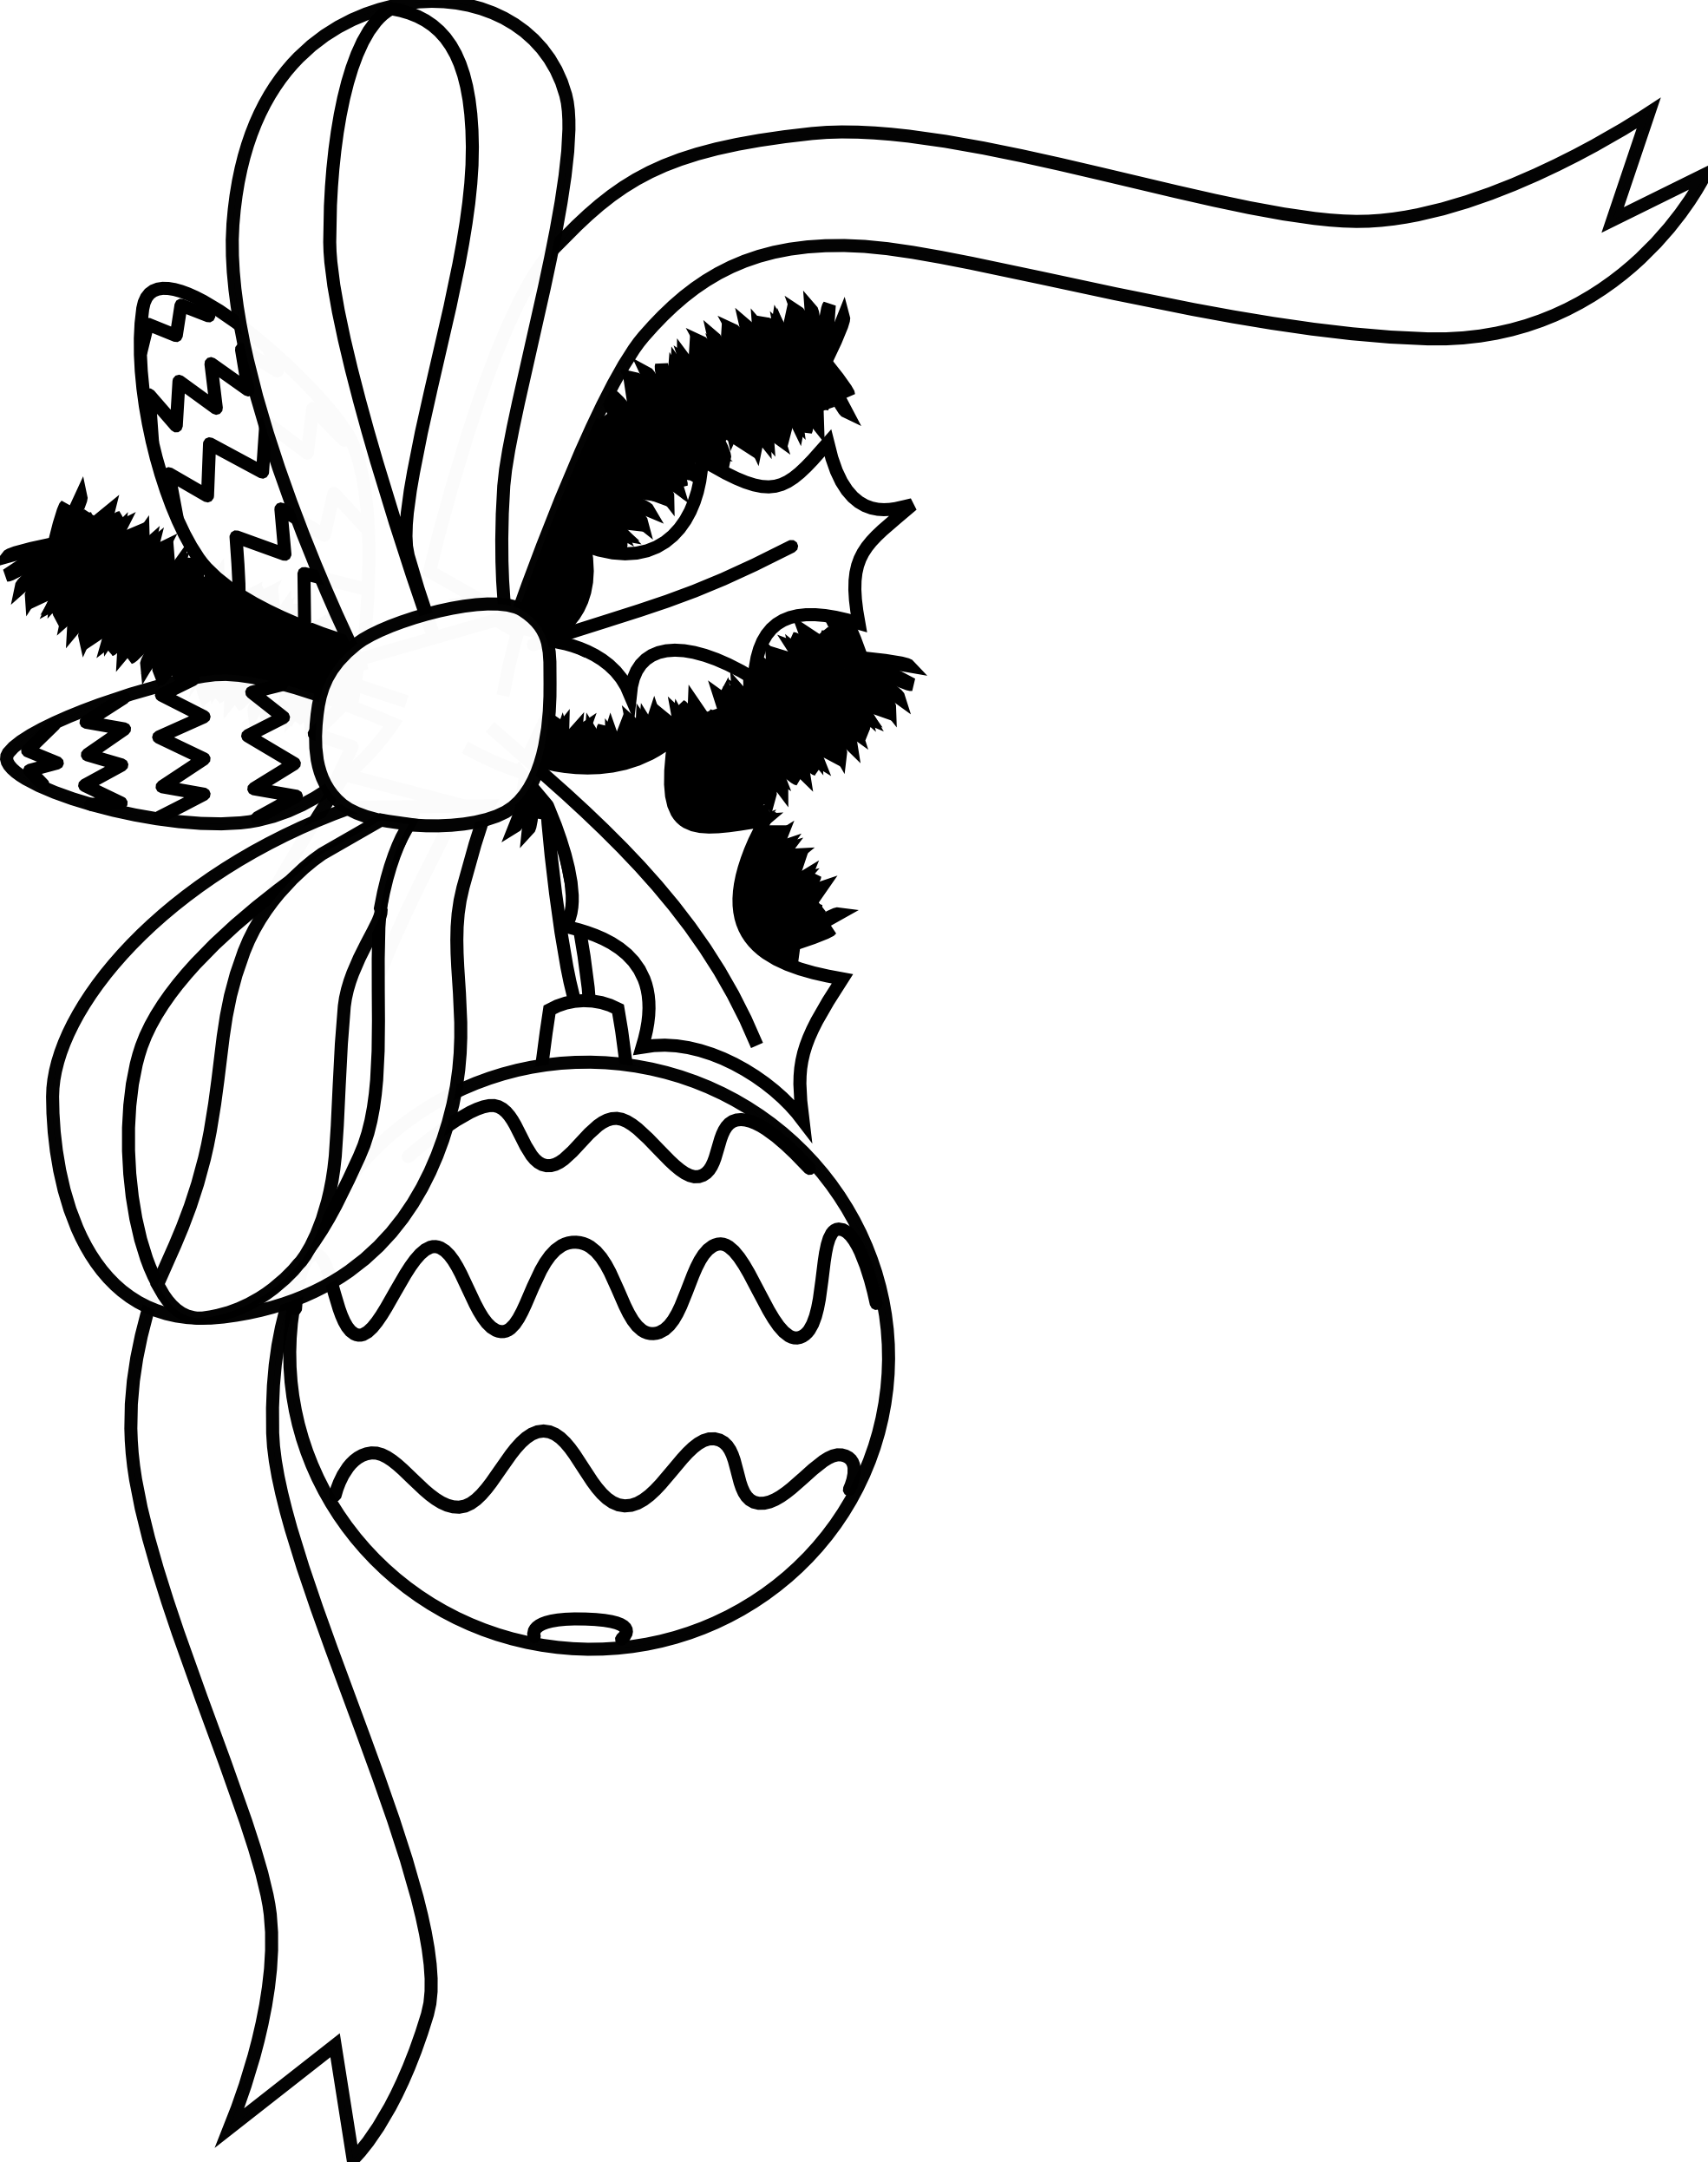 clipart black and white stock Christmas balls drawing at. Vacation clipart black and white